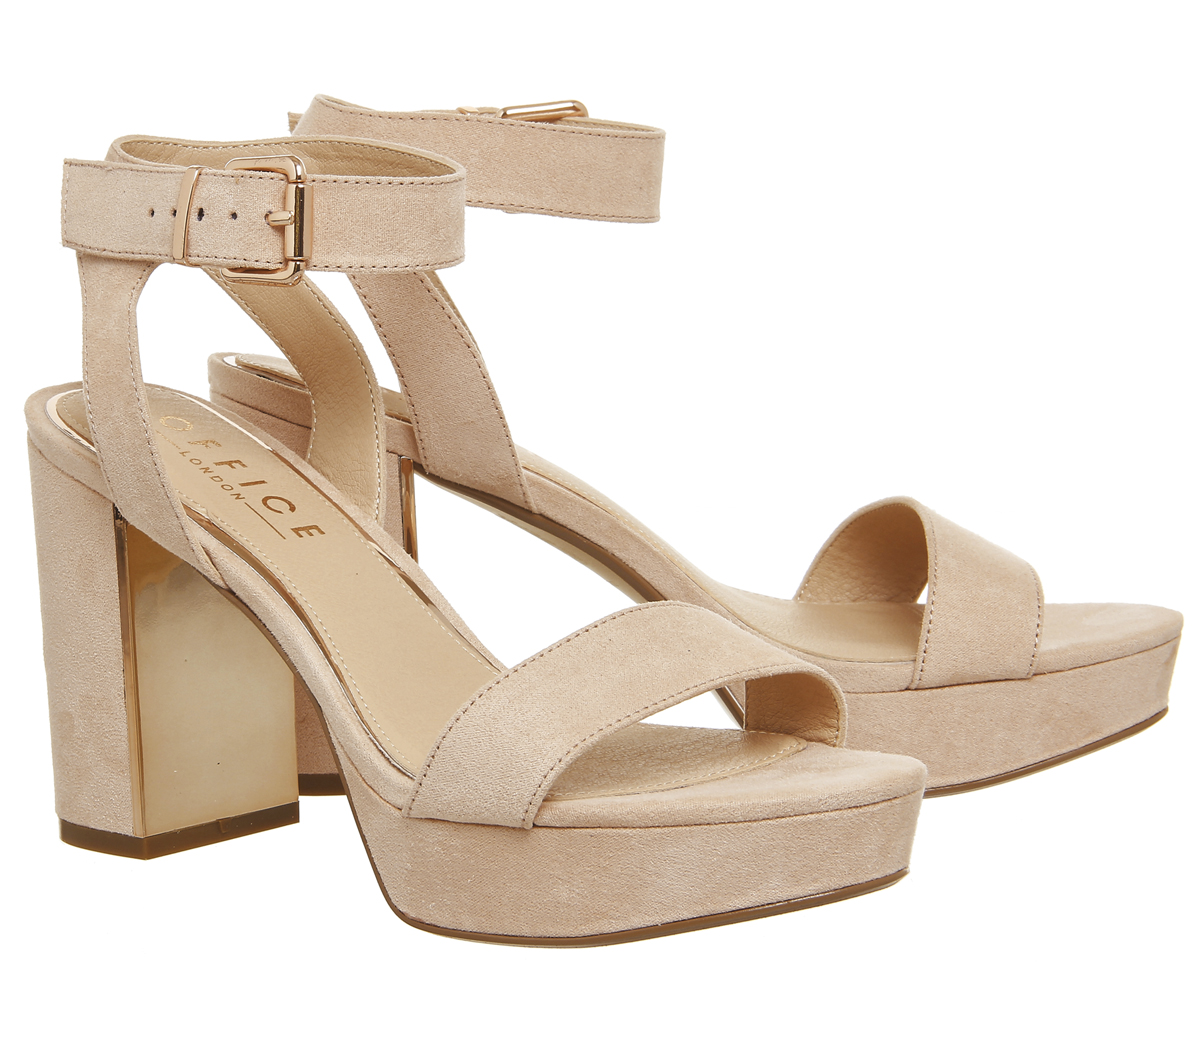 fc6f884e129 Sentinel Womens Office Mossy Platform Sandals NUDE WITH ROSE GOLD PALTE  Heels